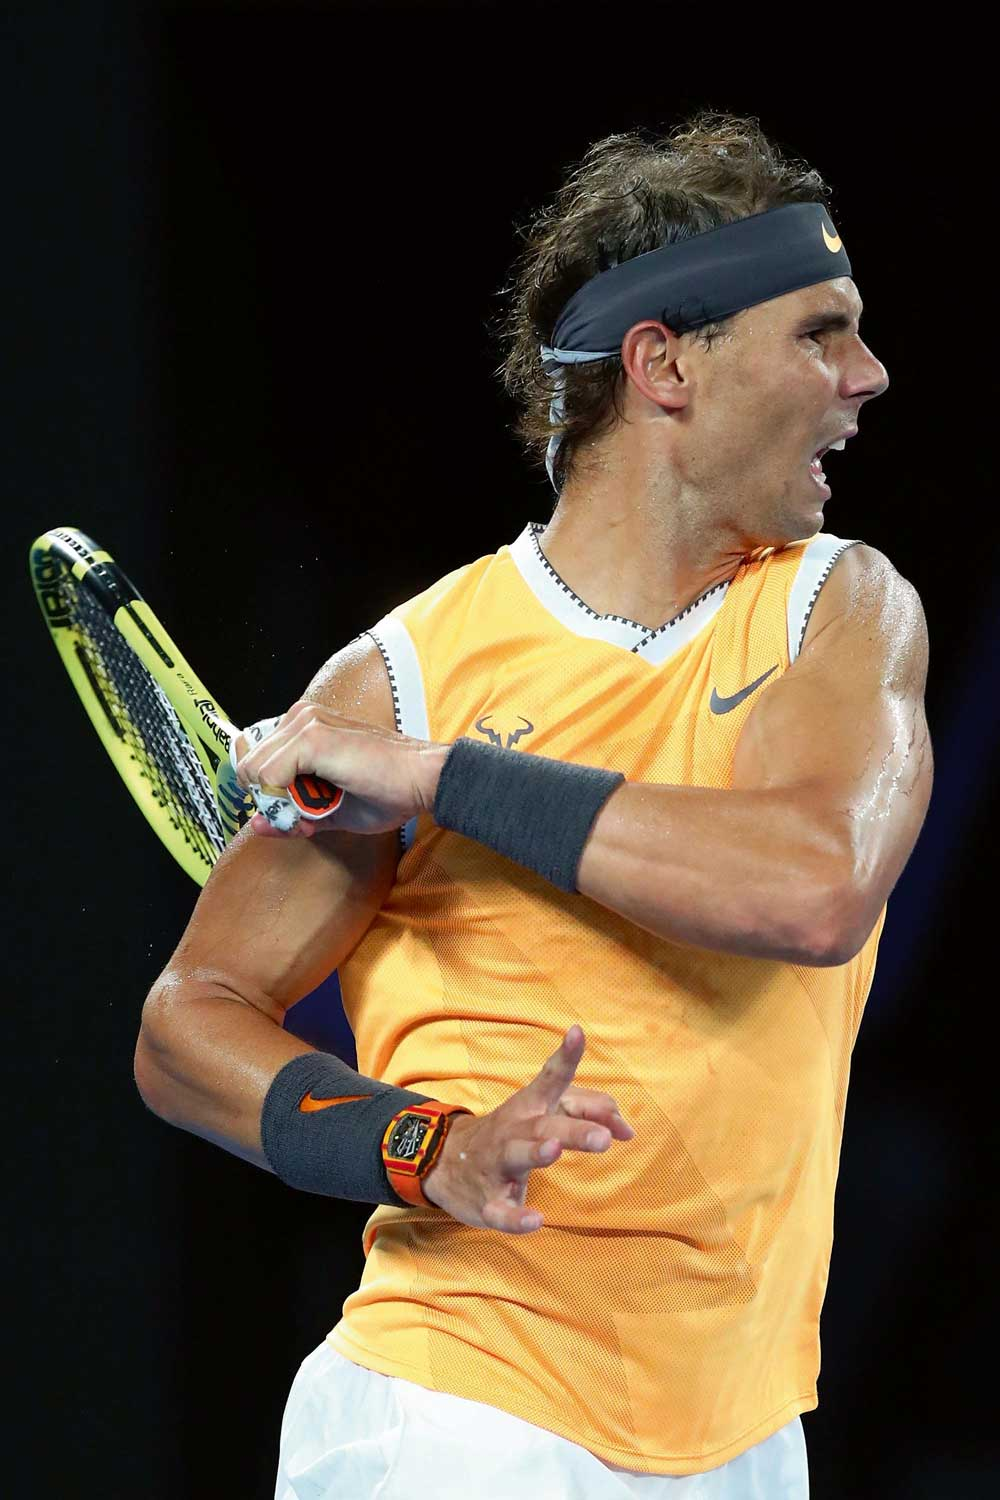 Rafael Nadal wearing his Richard Mille watch during competition